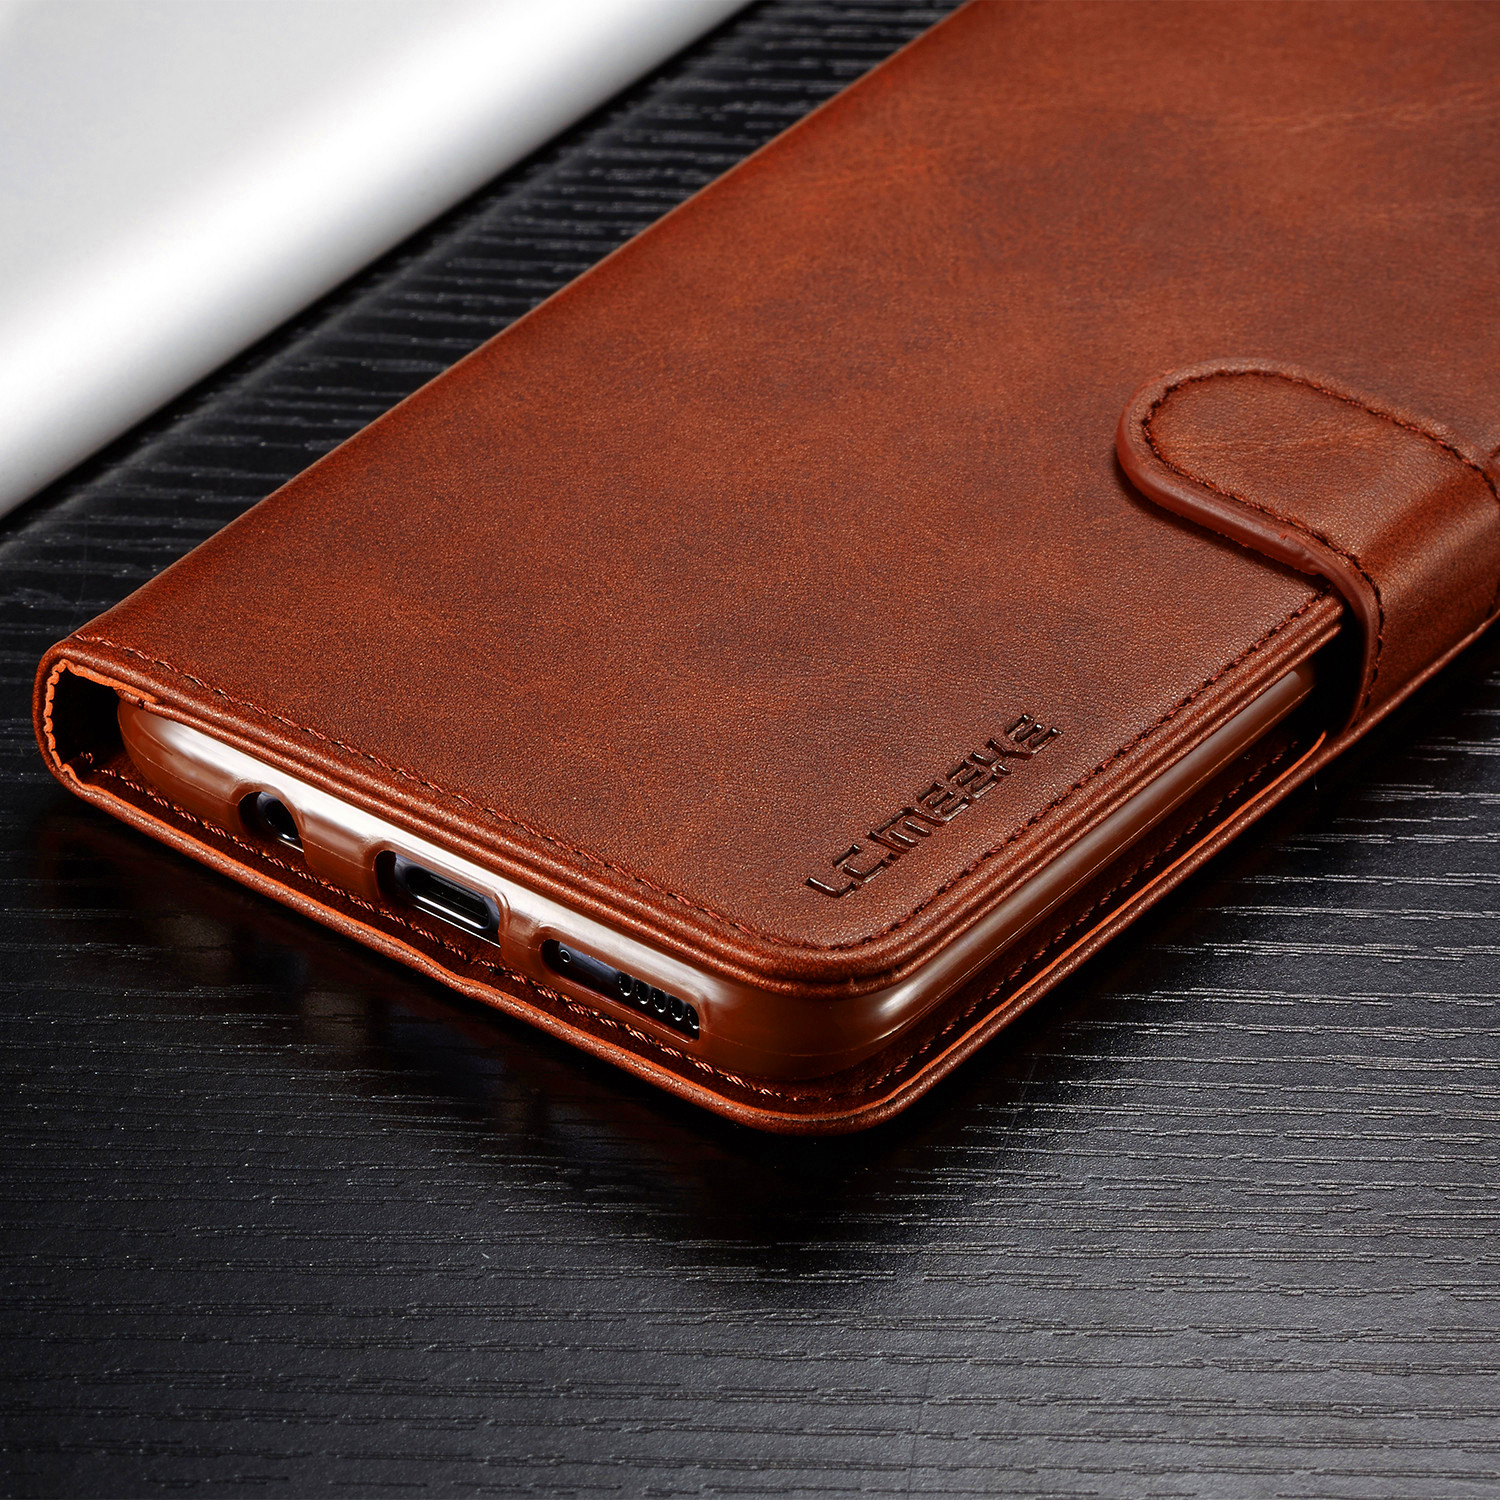 <font><b>Wallet</b></font> <font><b>Flip</b></font> <font><b>Leather</b></font> Phone <font><b>Case</b></font> For <font><b>Samsung</b></font> Galaxy A10 A20 A30 A40 A50 A60 A70 Cover <font><b>M10</b></font> M20 M30 Magnetic Card slot <font><b>Case</b></font> <font><b>Stand</b></font> image